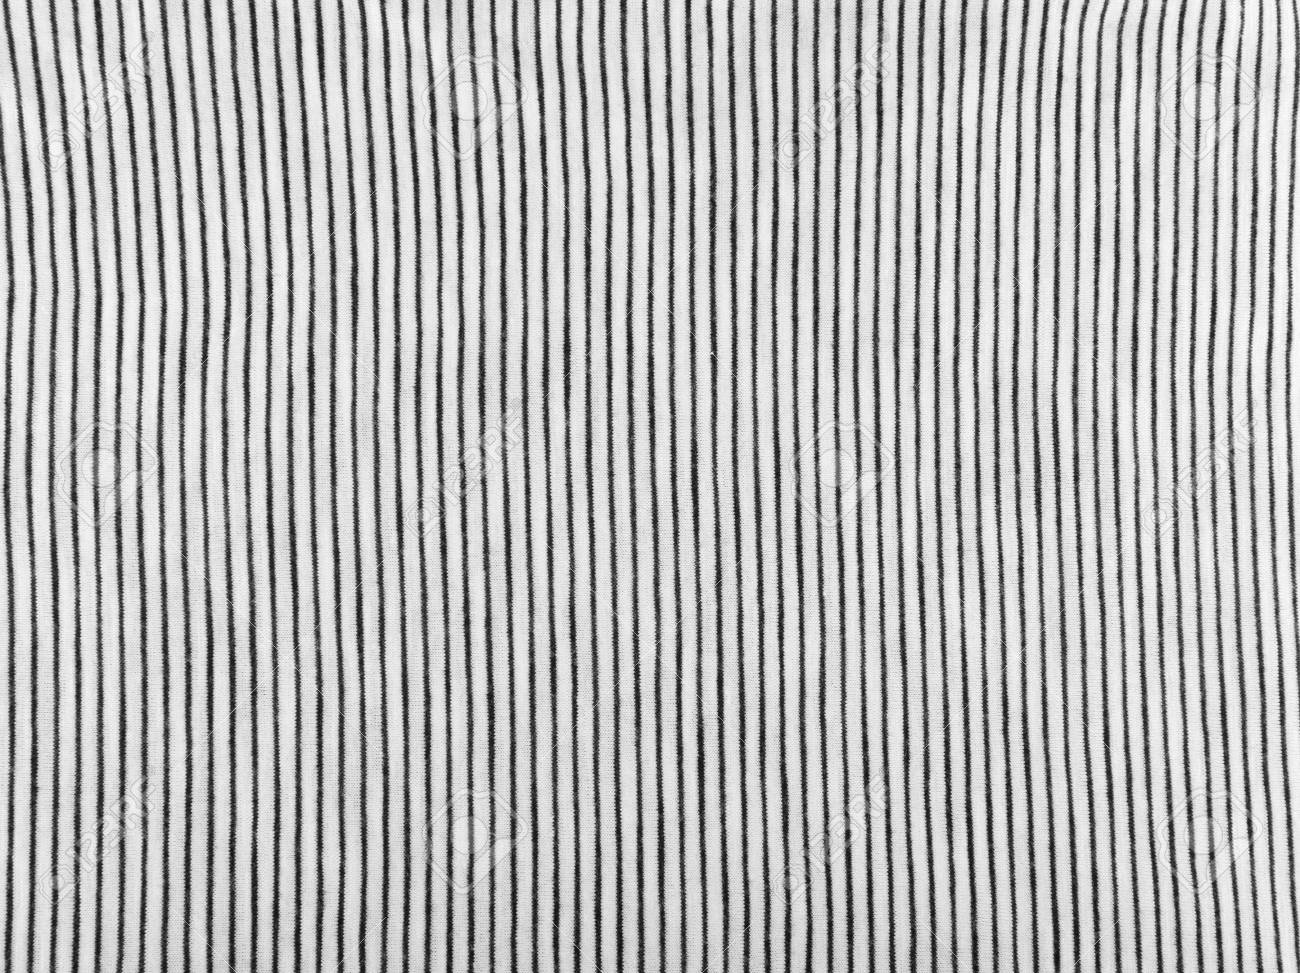 Striped Cotton Fabric Background Black And White Textile Pattern